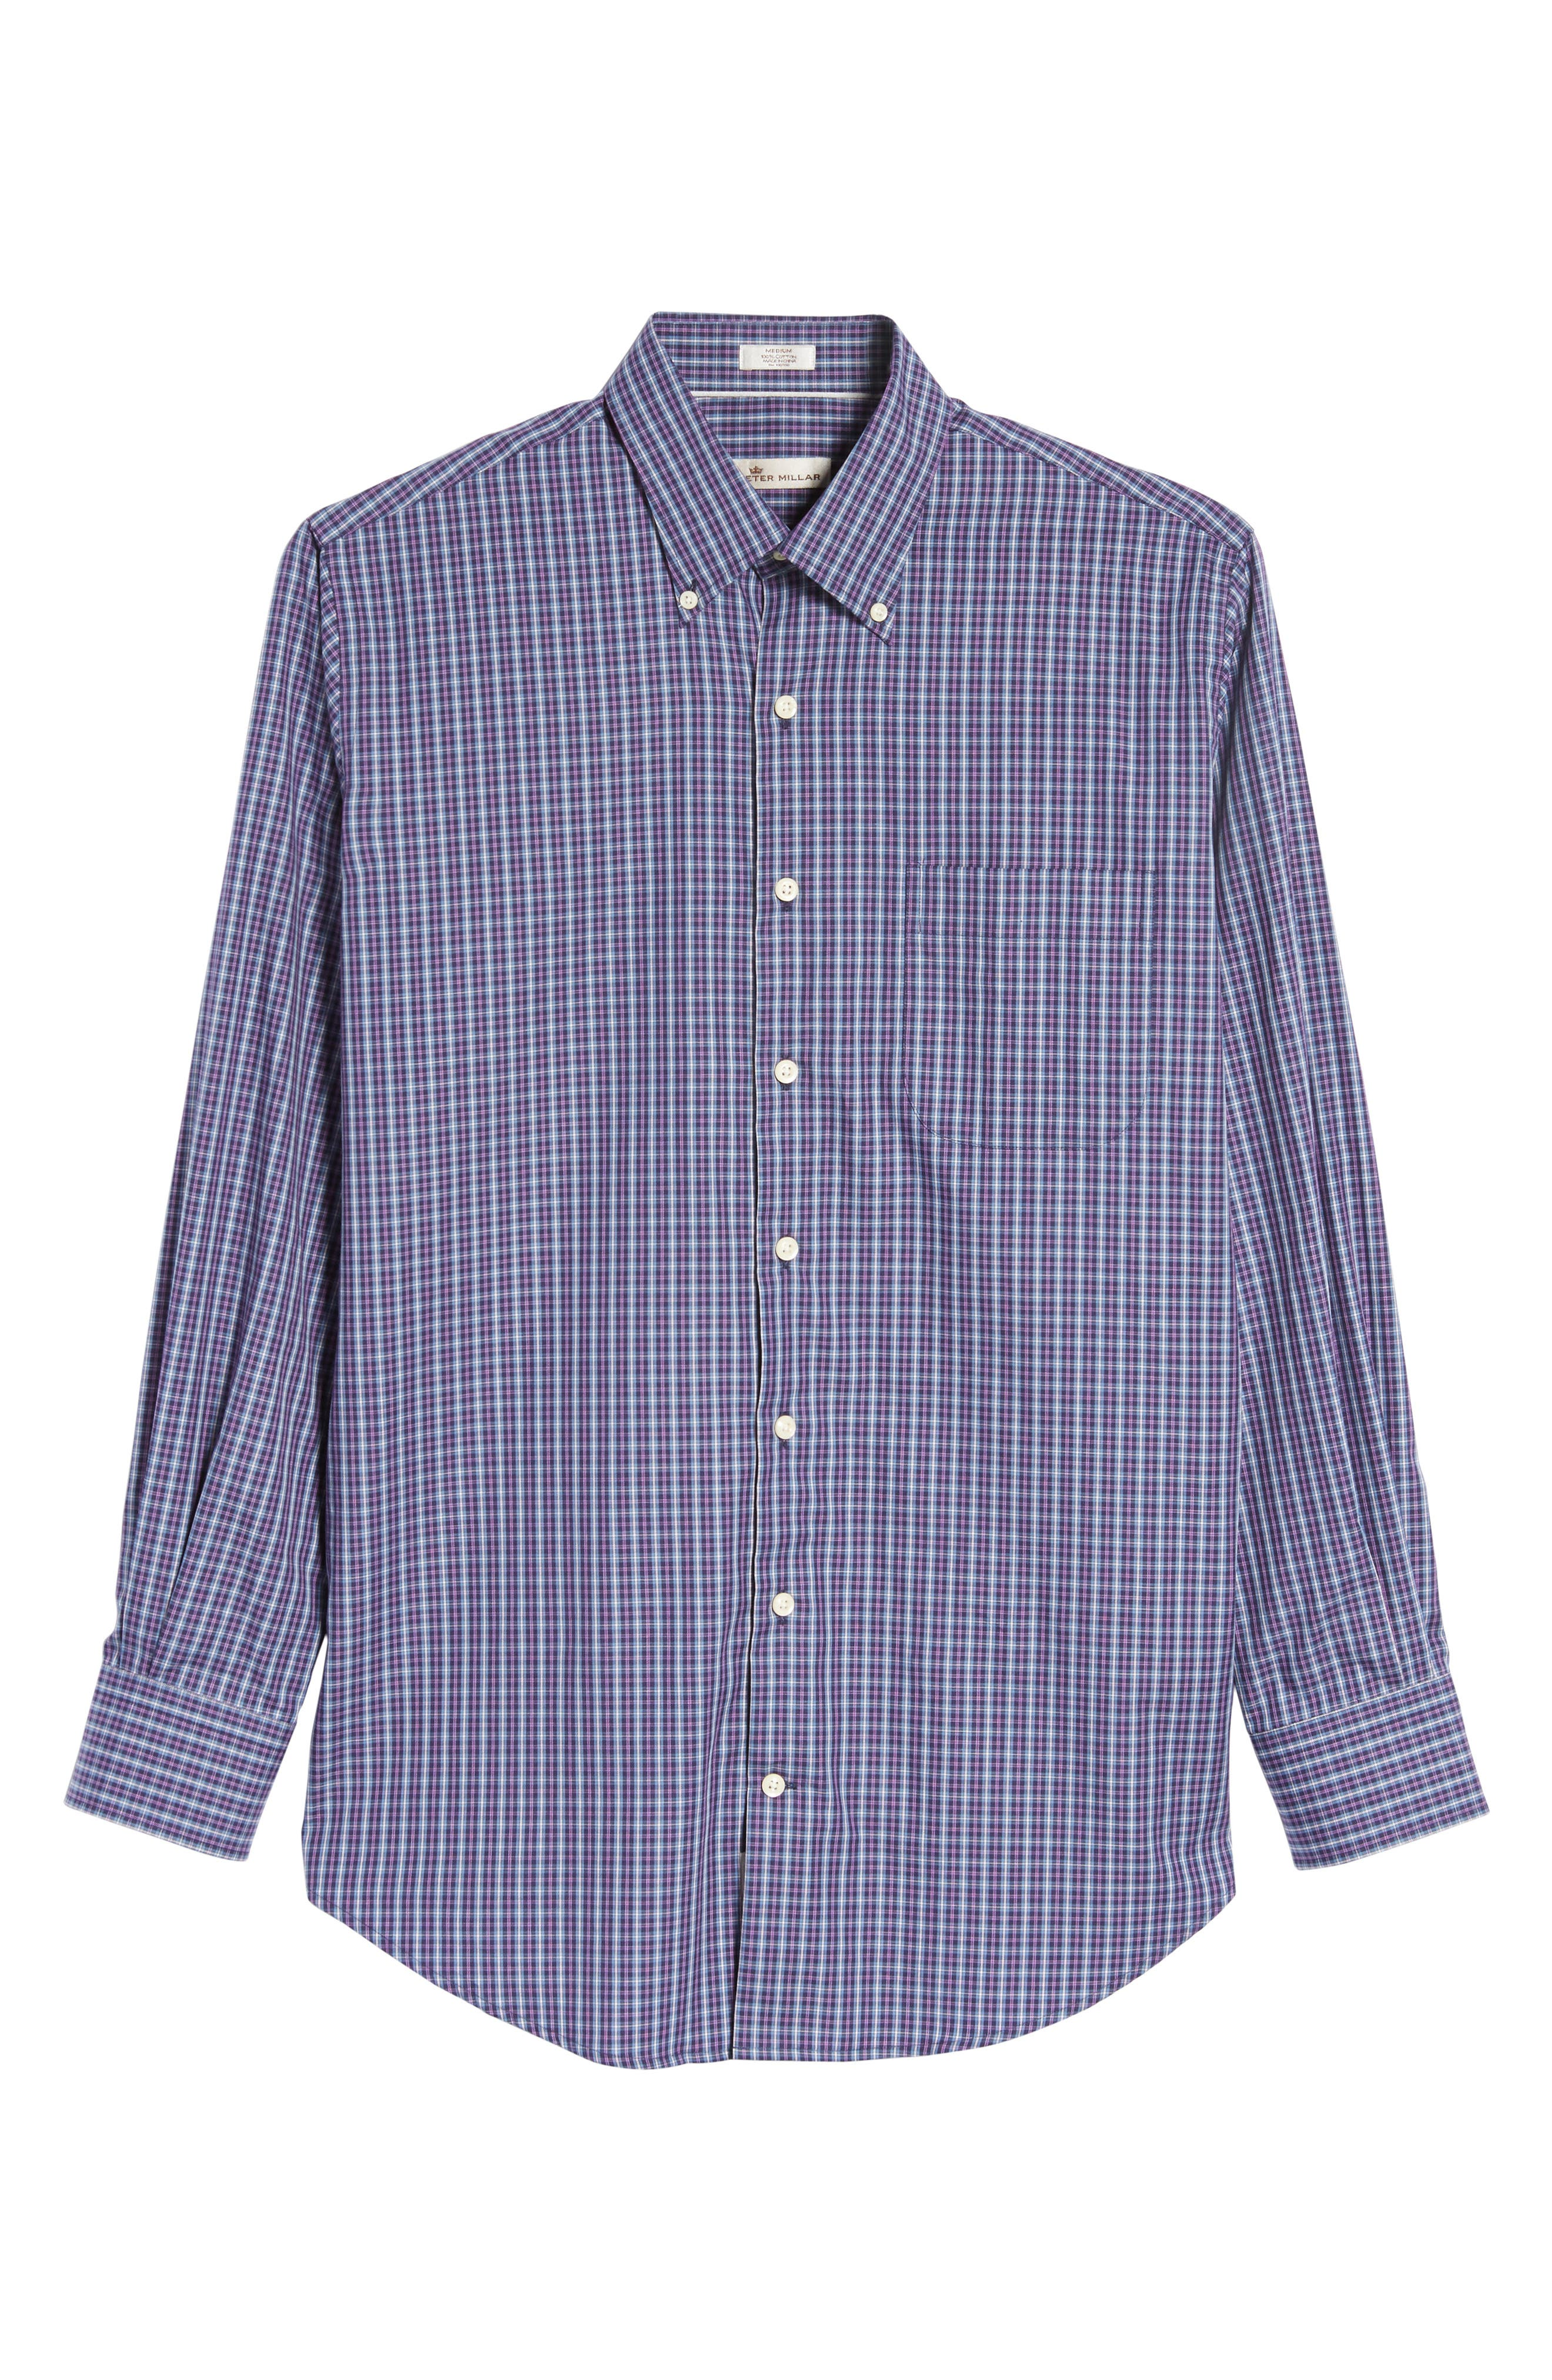 Hillock Regular Fit Plaid Sport Shirt,                             Alternate thumbnail 5, color,                             Moon Blue